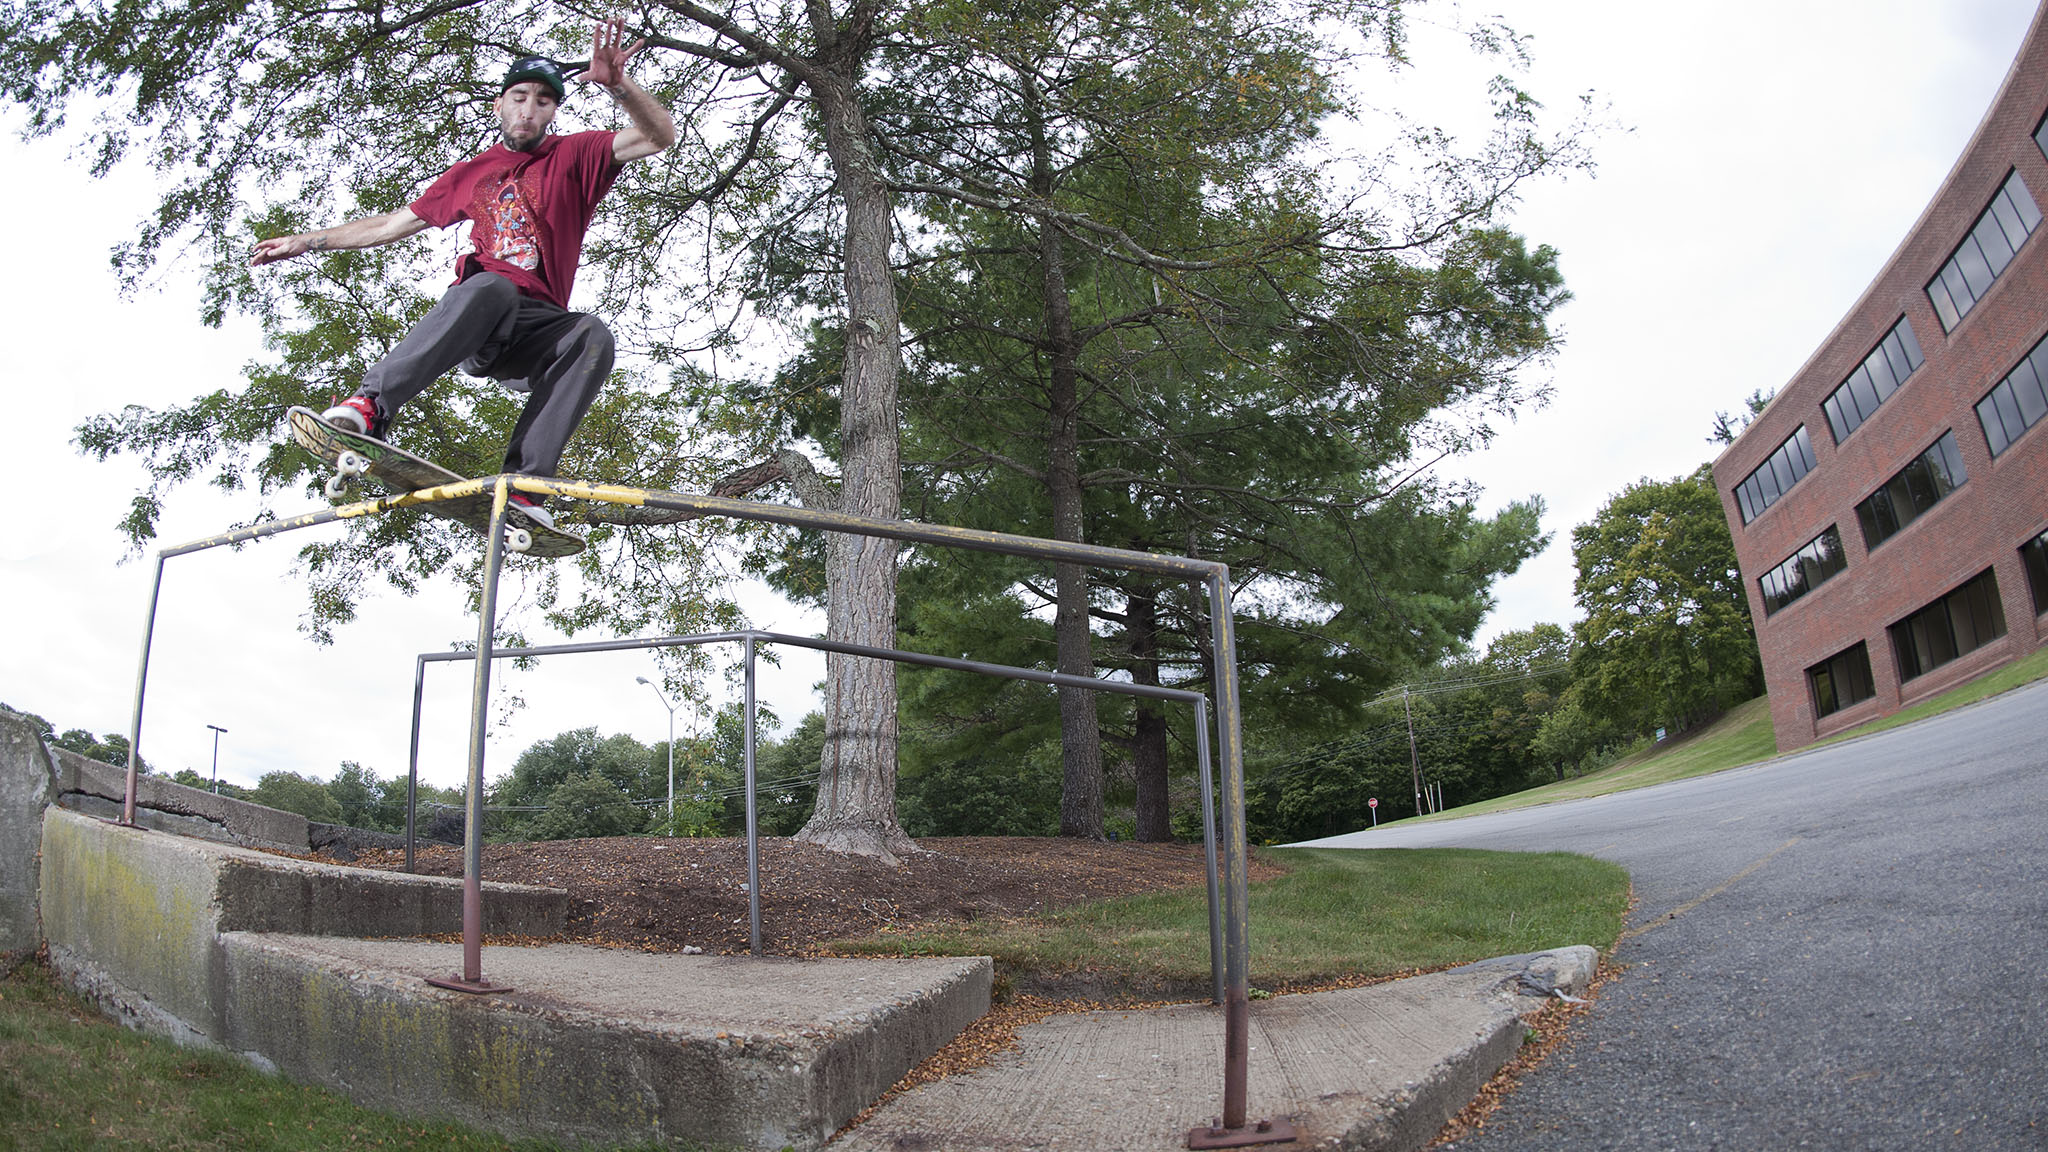 Anthony Shetler, gap to lipslide.